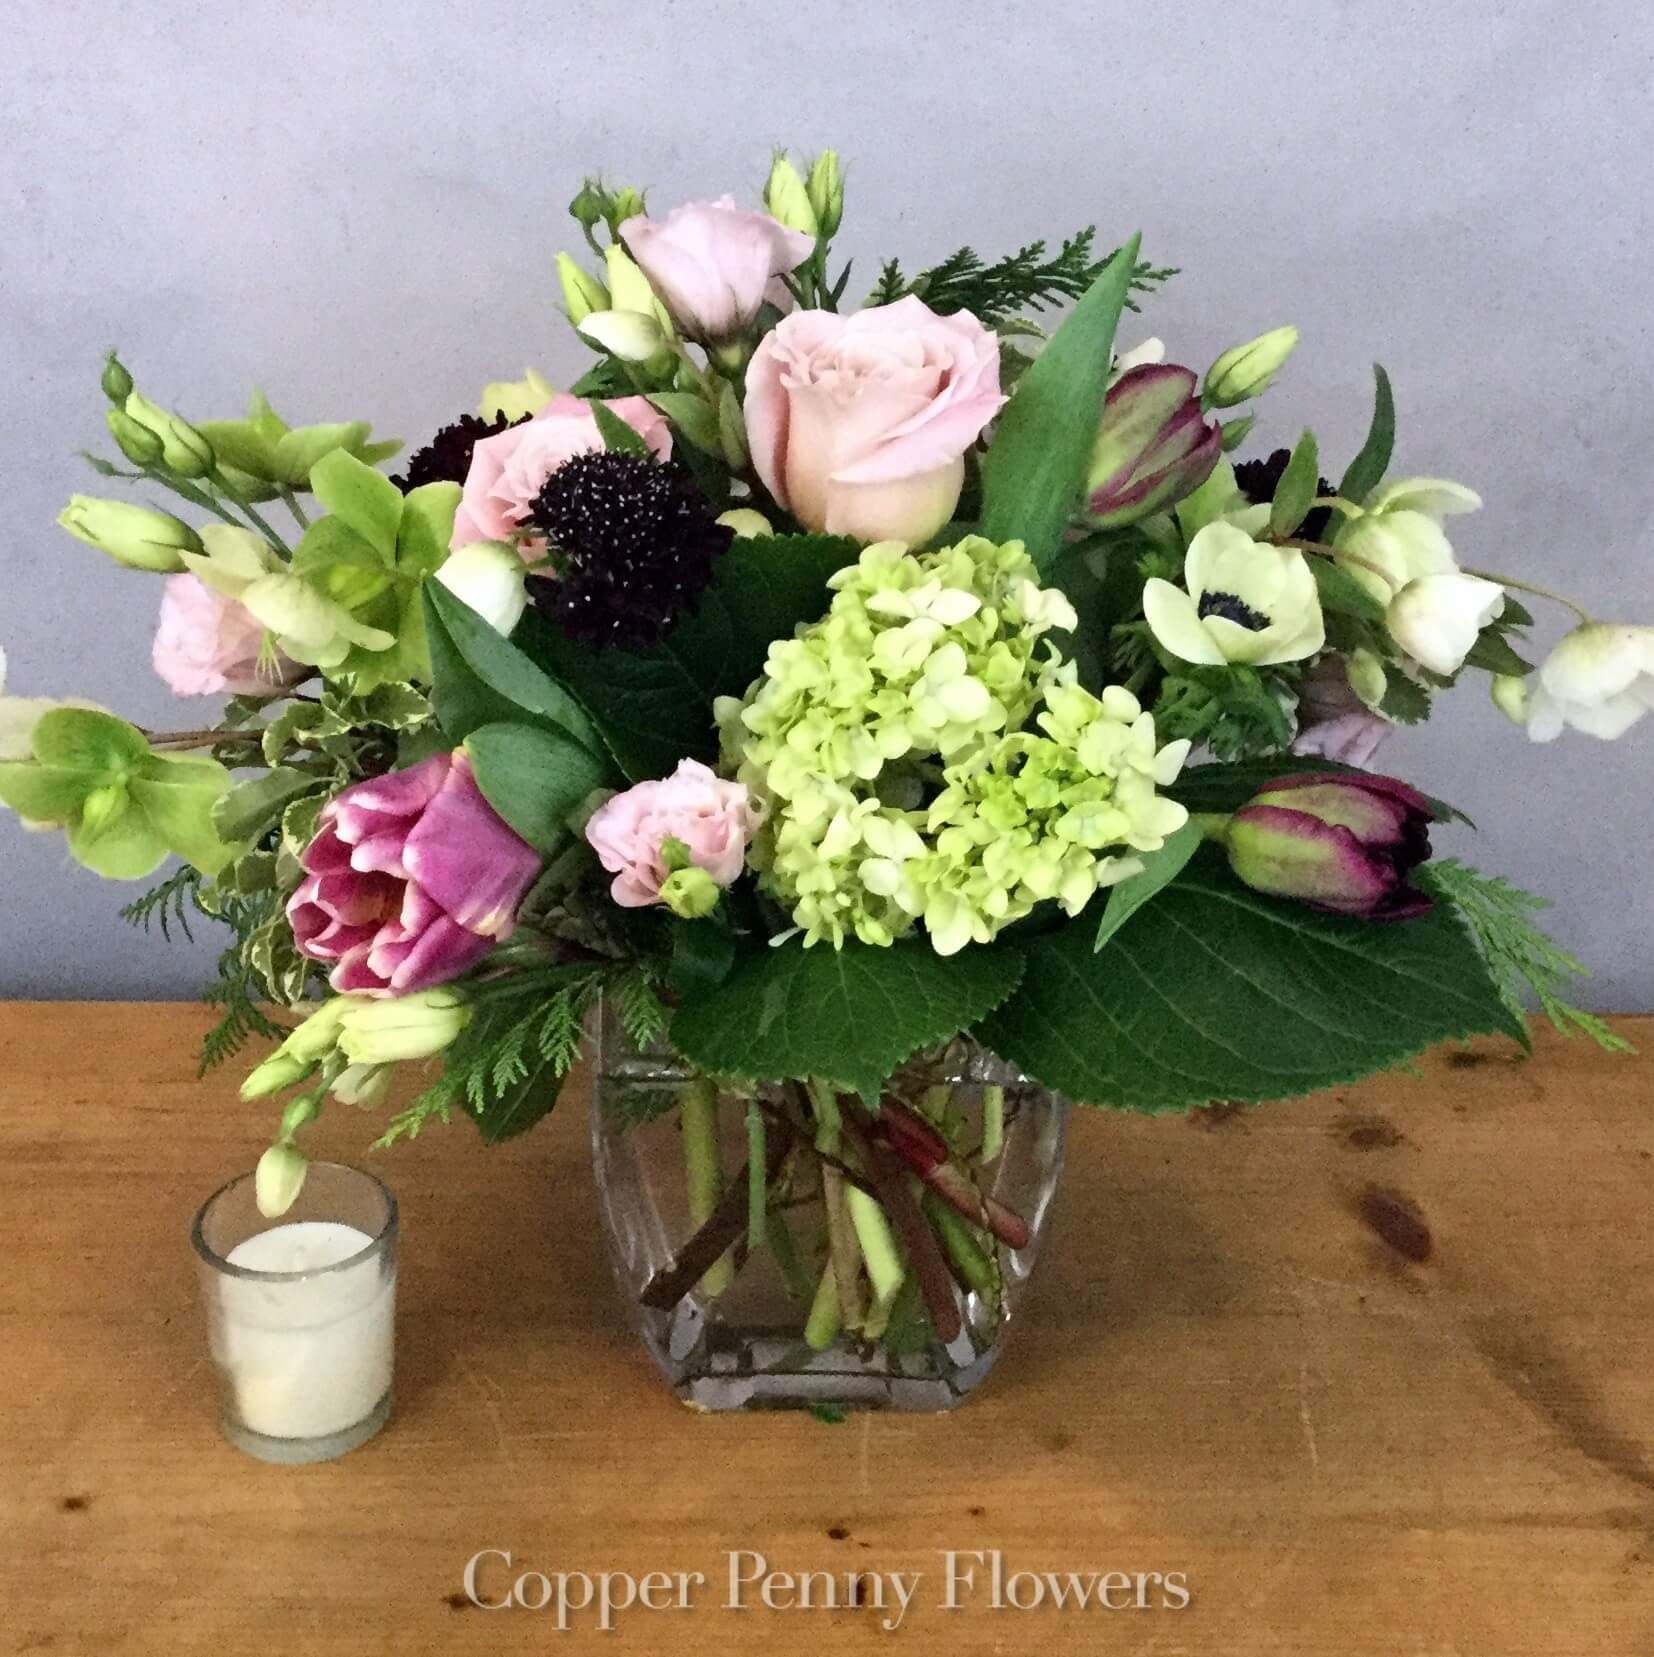 Mint Tulip features hydrangea, tulips, and roses, in pastels and deeper tones